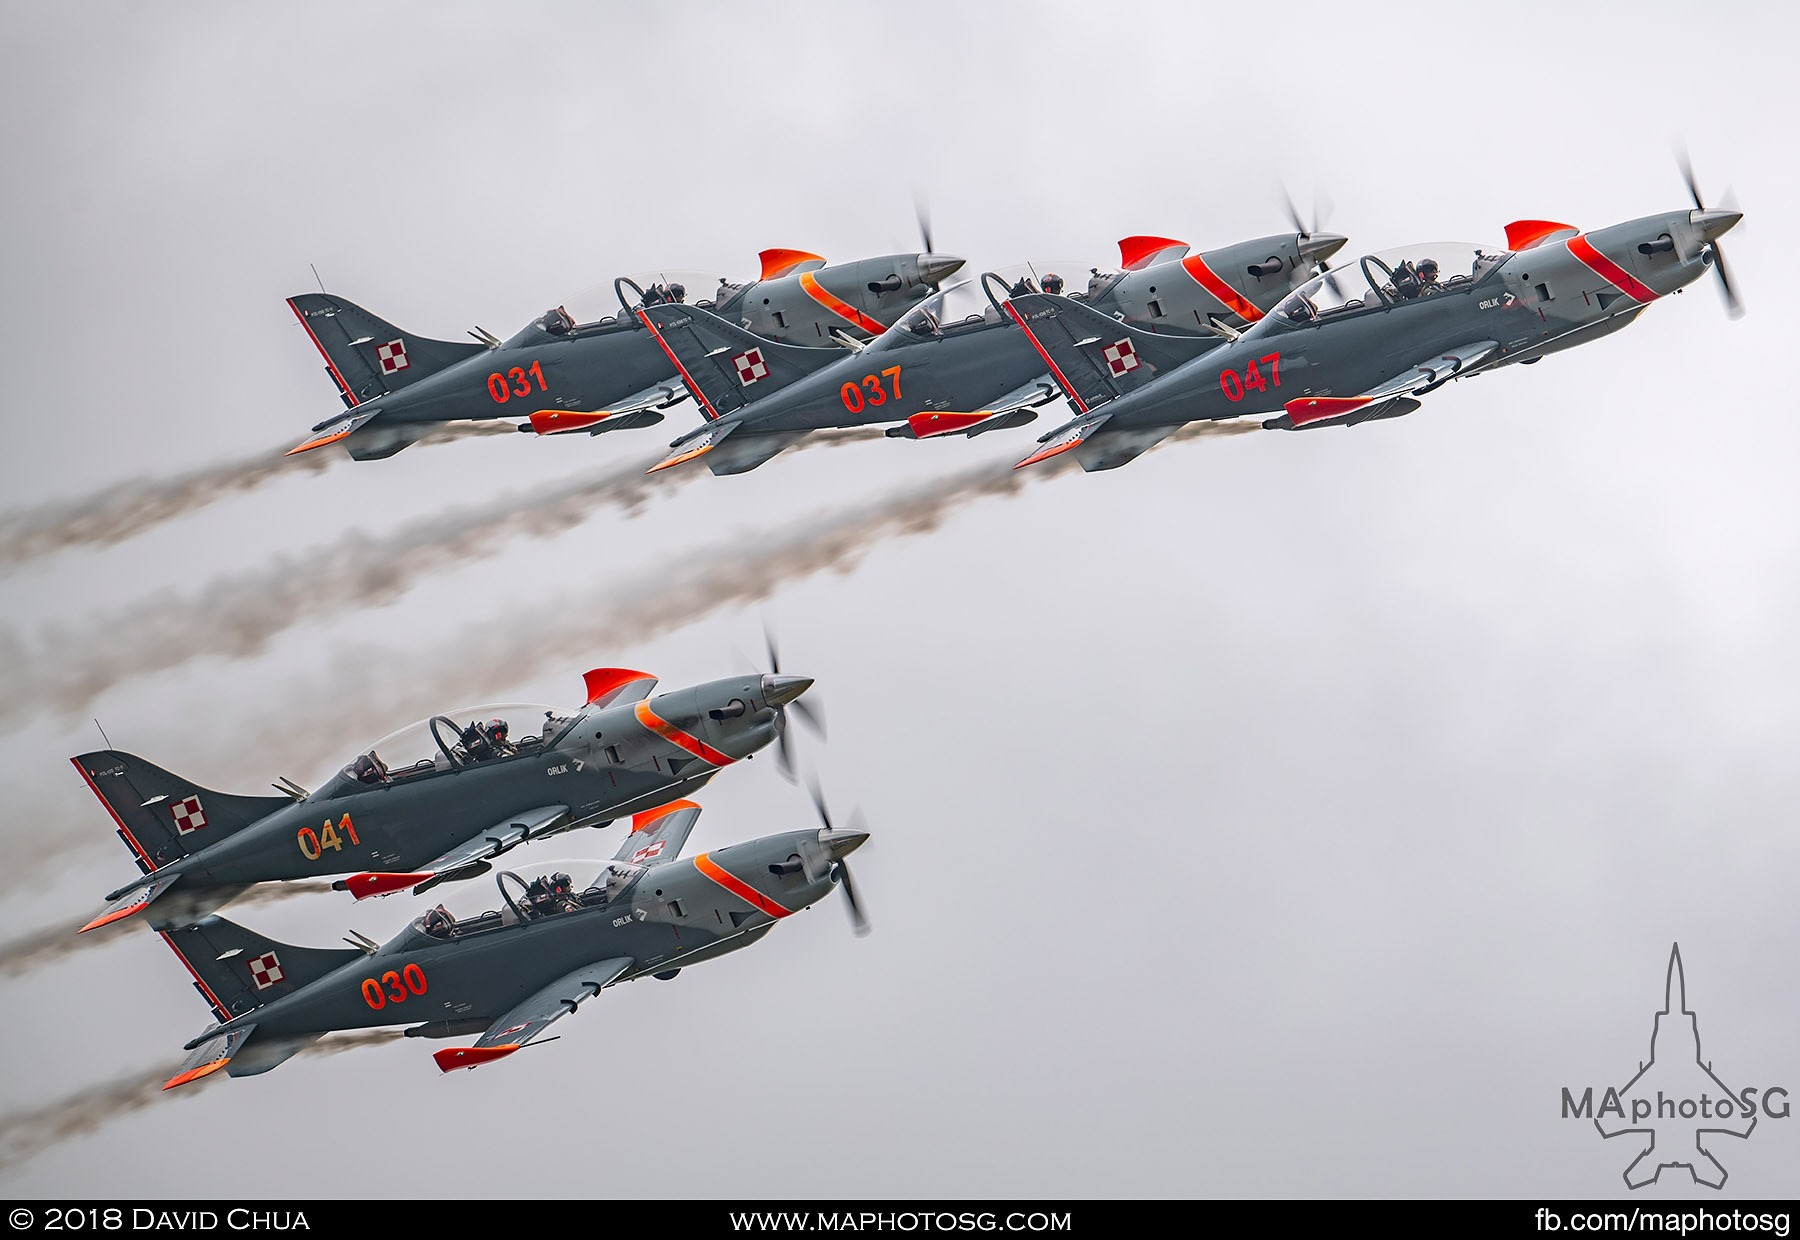 24. Polish Air Force Team Orlik PZL-130s